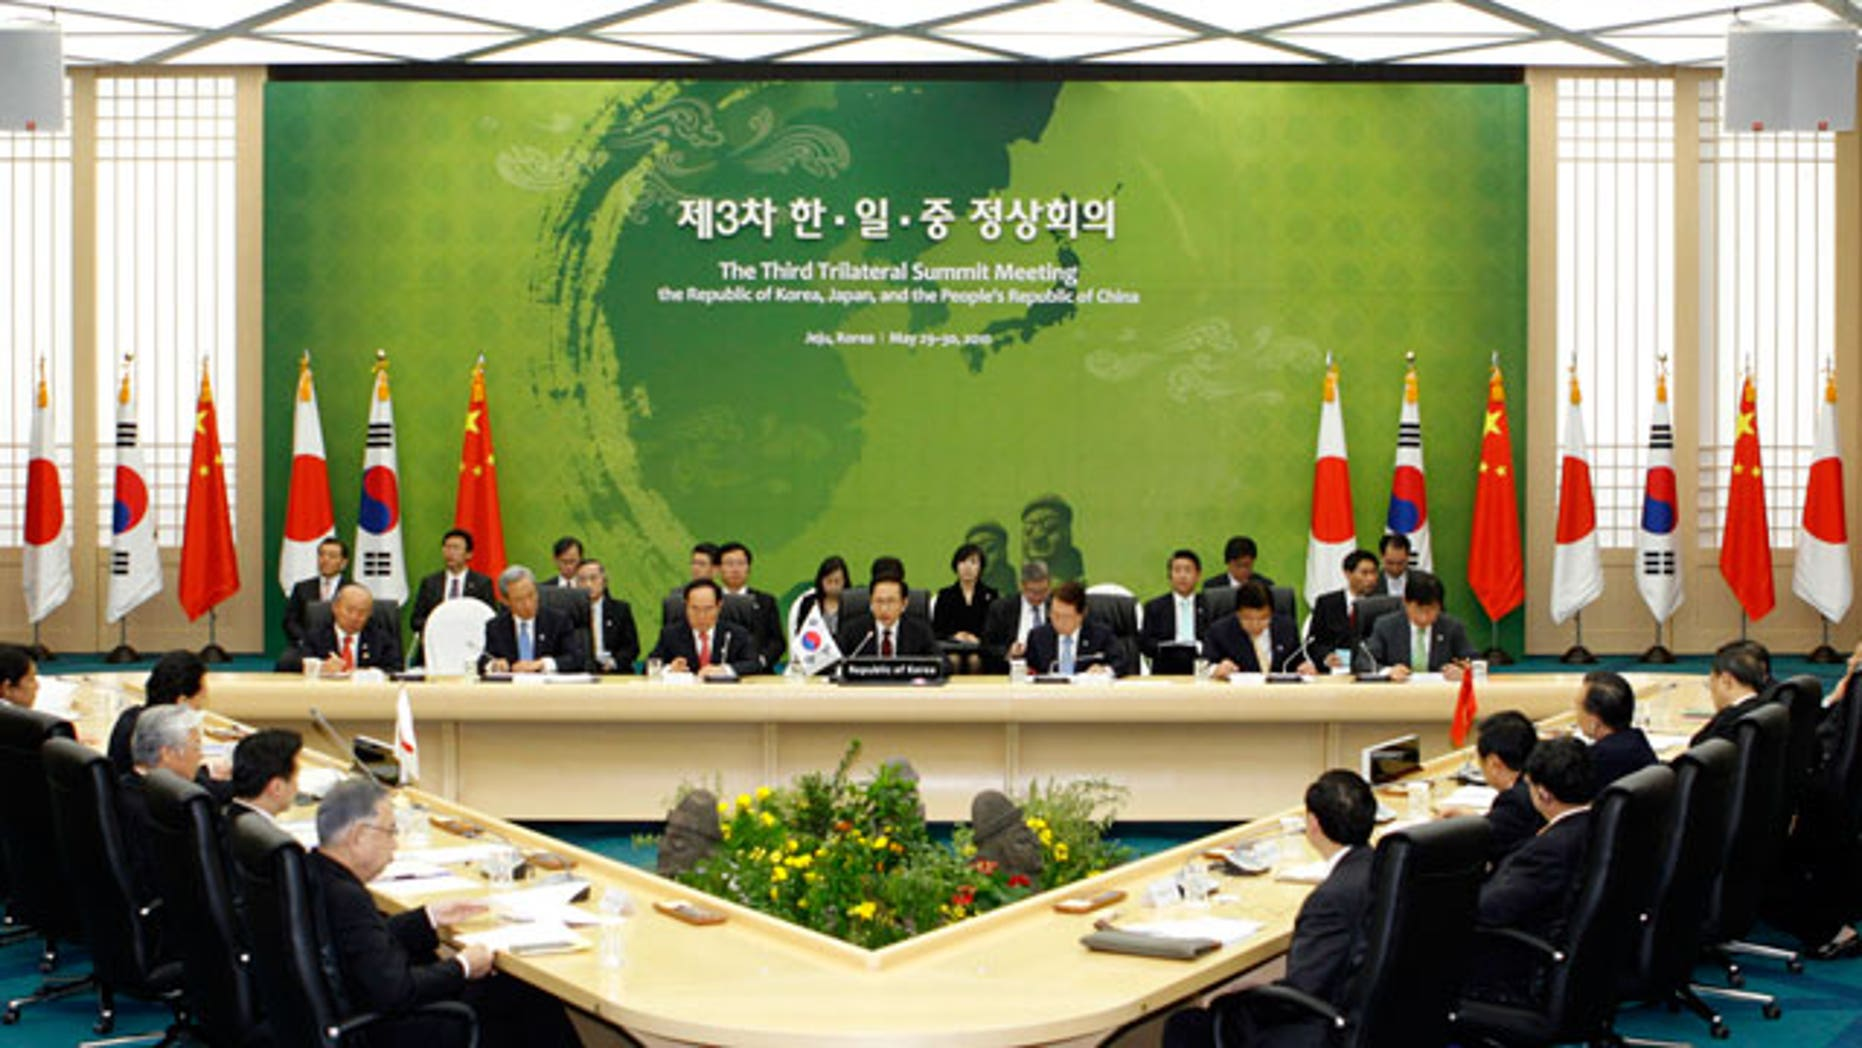 Officials from South Korea, background, Japan, left, and China participate in the trilateral summit in Seogwipo on Jeju island, South Korea, Sunday, May 30, 2010. South Korean President Lee Myung-bak, Japanese Prime Minister Yukio Hatoyama and Chinese Premier Wen Jiabao met Sunday on the last day of a summit expected to focus on how to respond to the sinking of a South Korean warship blamed on North Korea.